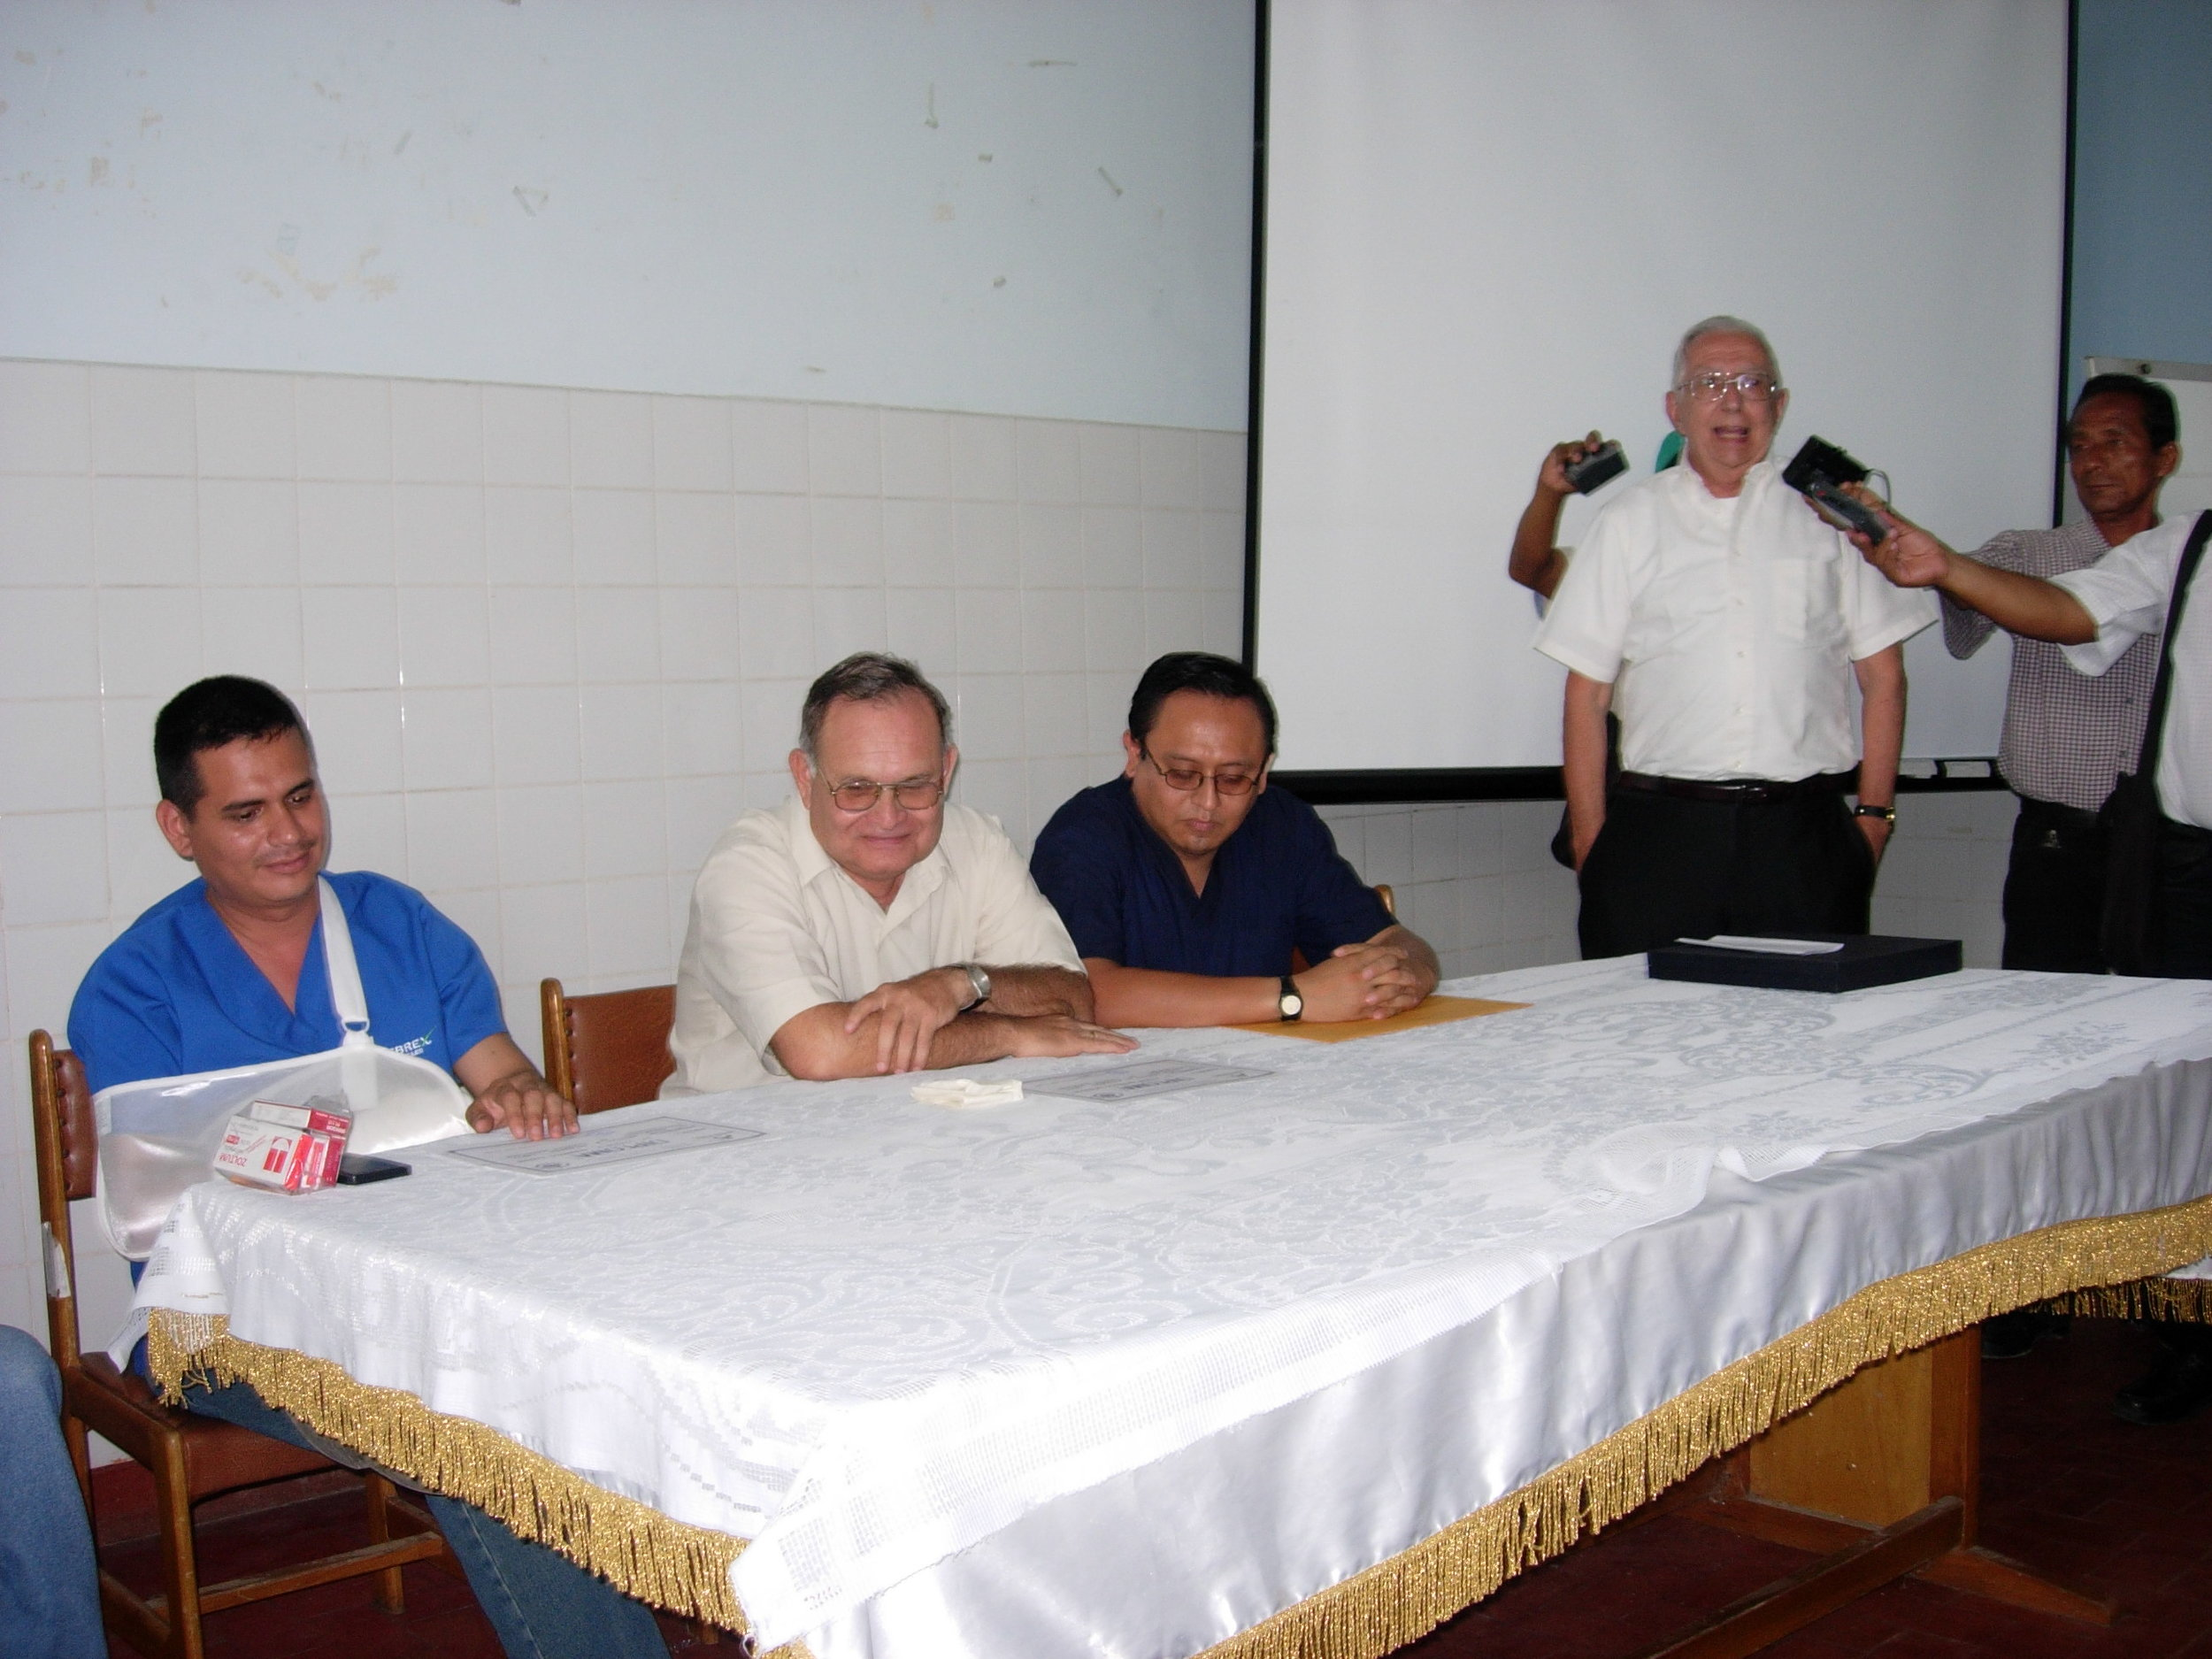 Fr. Appicci efforts included improving medical care. The gentleman on the far-left, was instrumental in buildingthe only medical facility in the Chulucanas..JPG